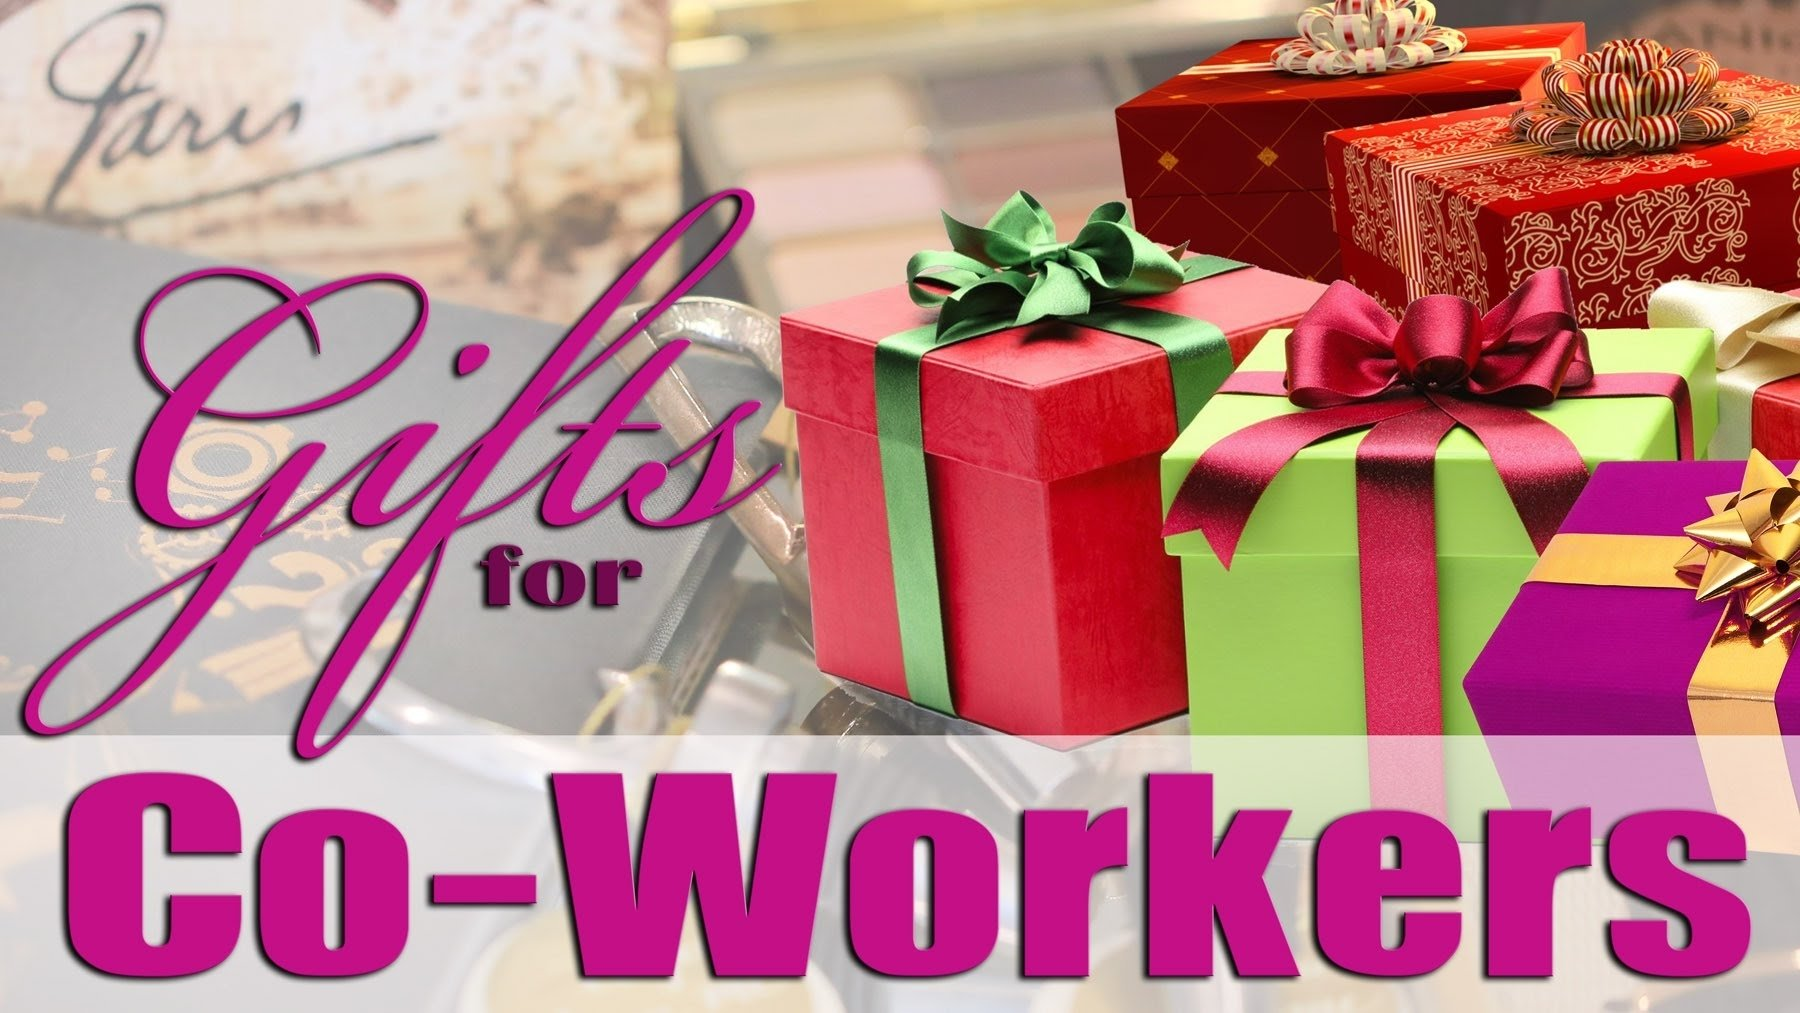 10 Nice Small Gift Ideas For Coworkers gifts ideas for coworkers under 20 youtube 7 2020